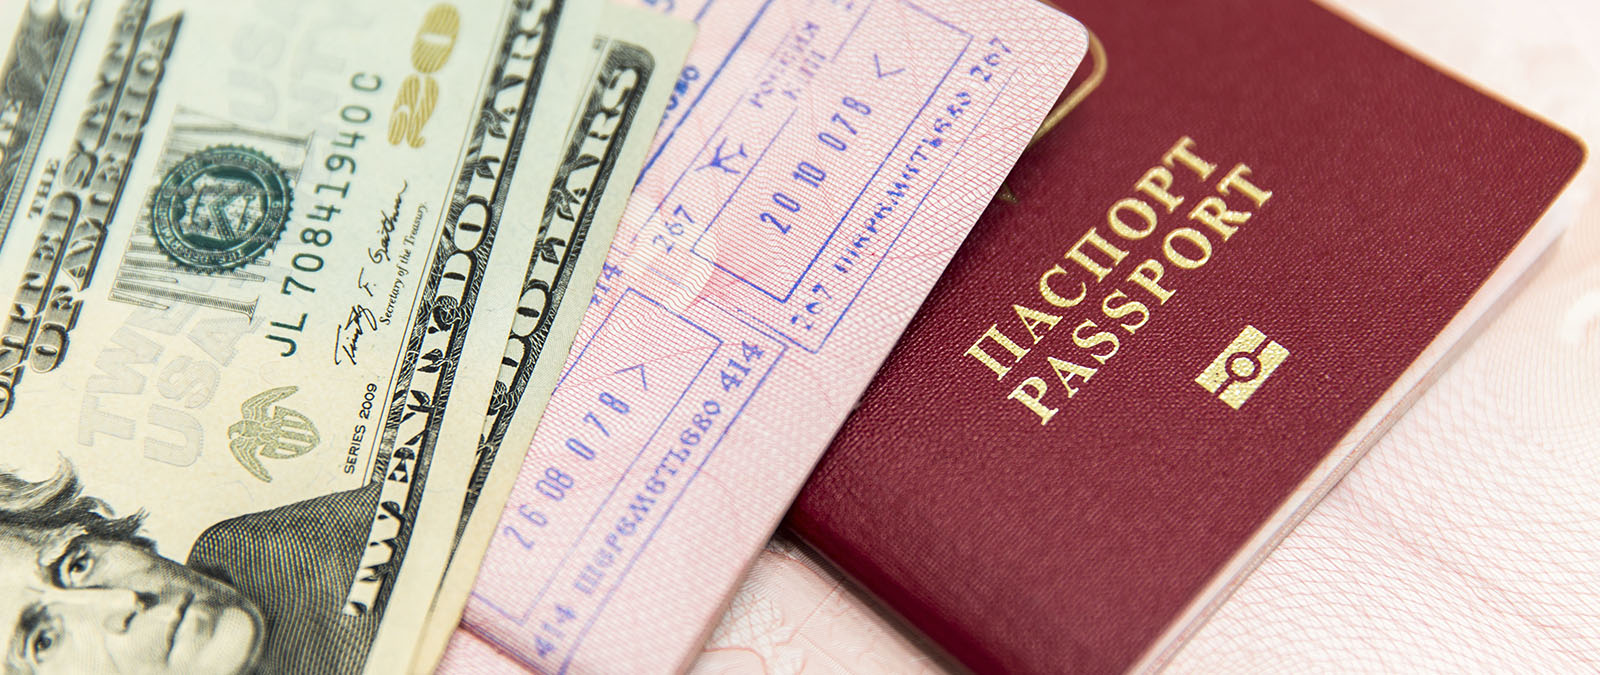 Nowadays modernised passports have security components that cannot be easily simulated by forgery